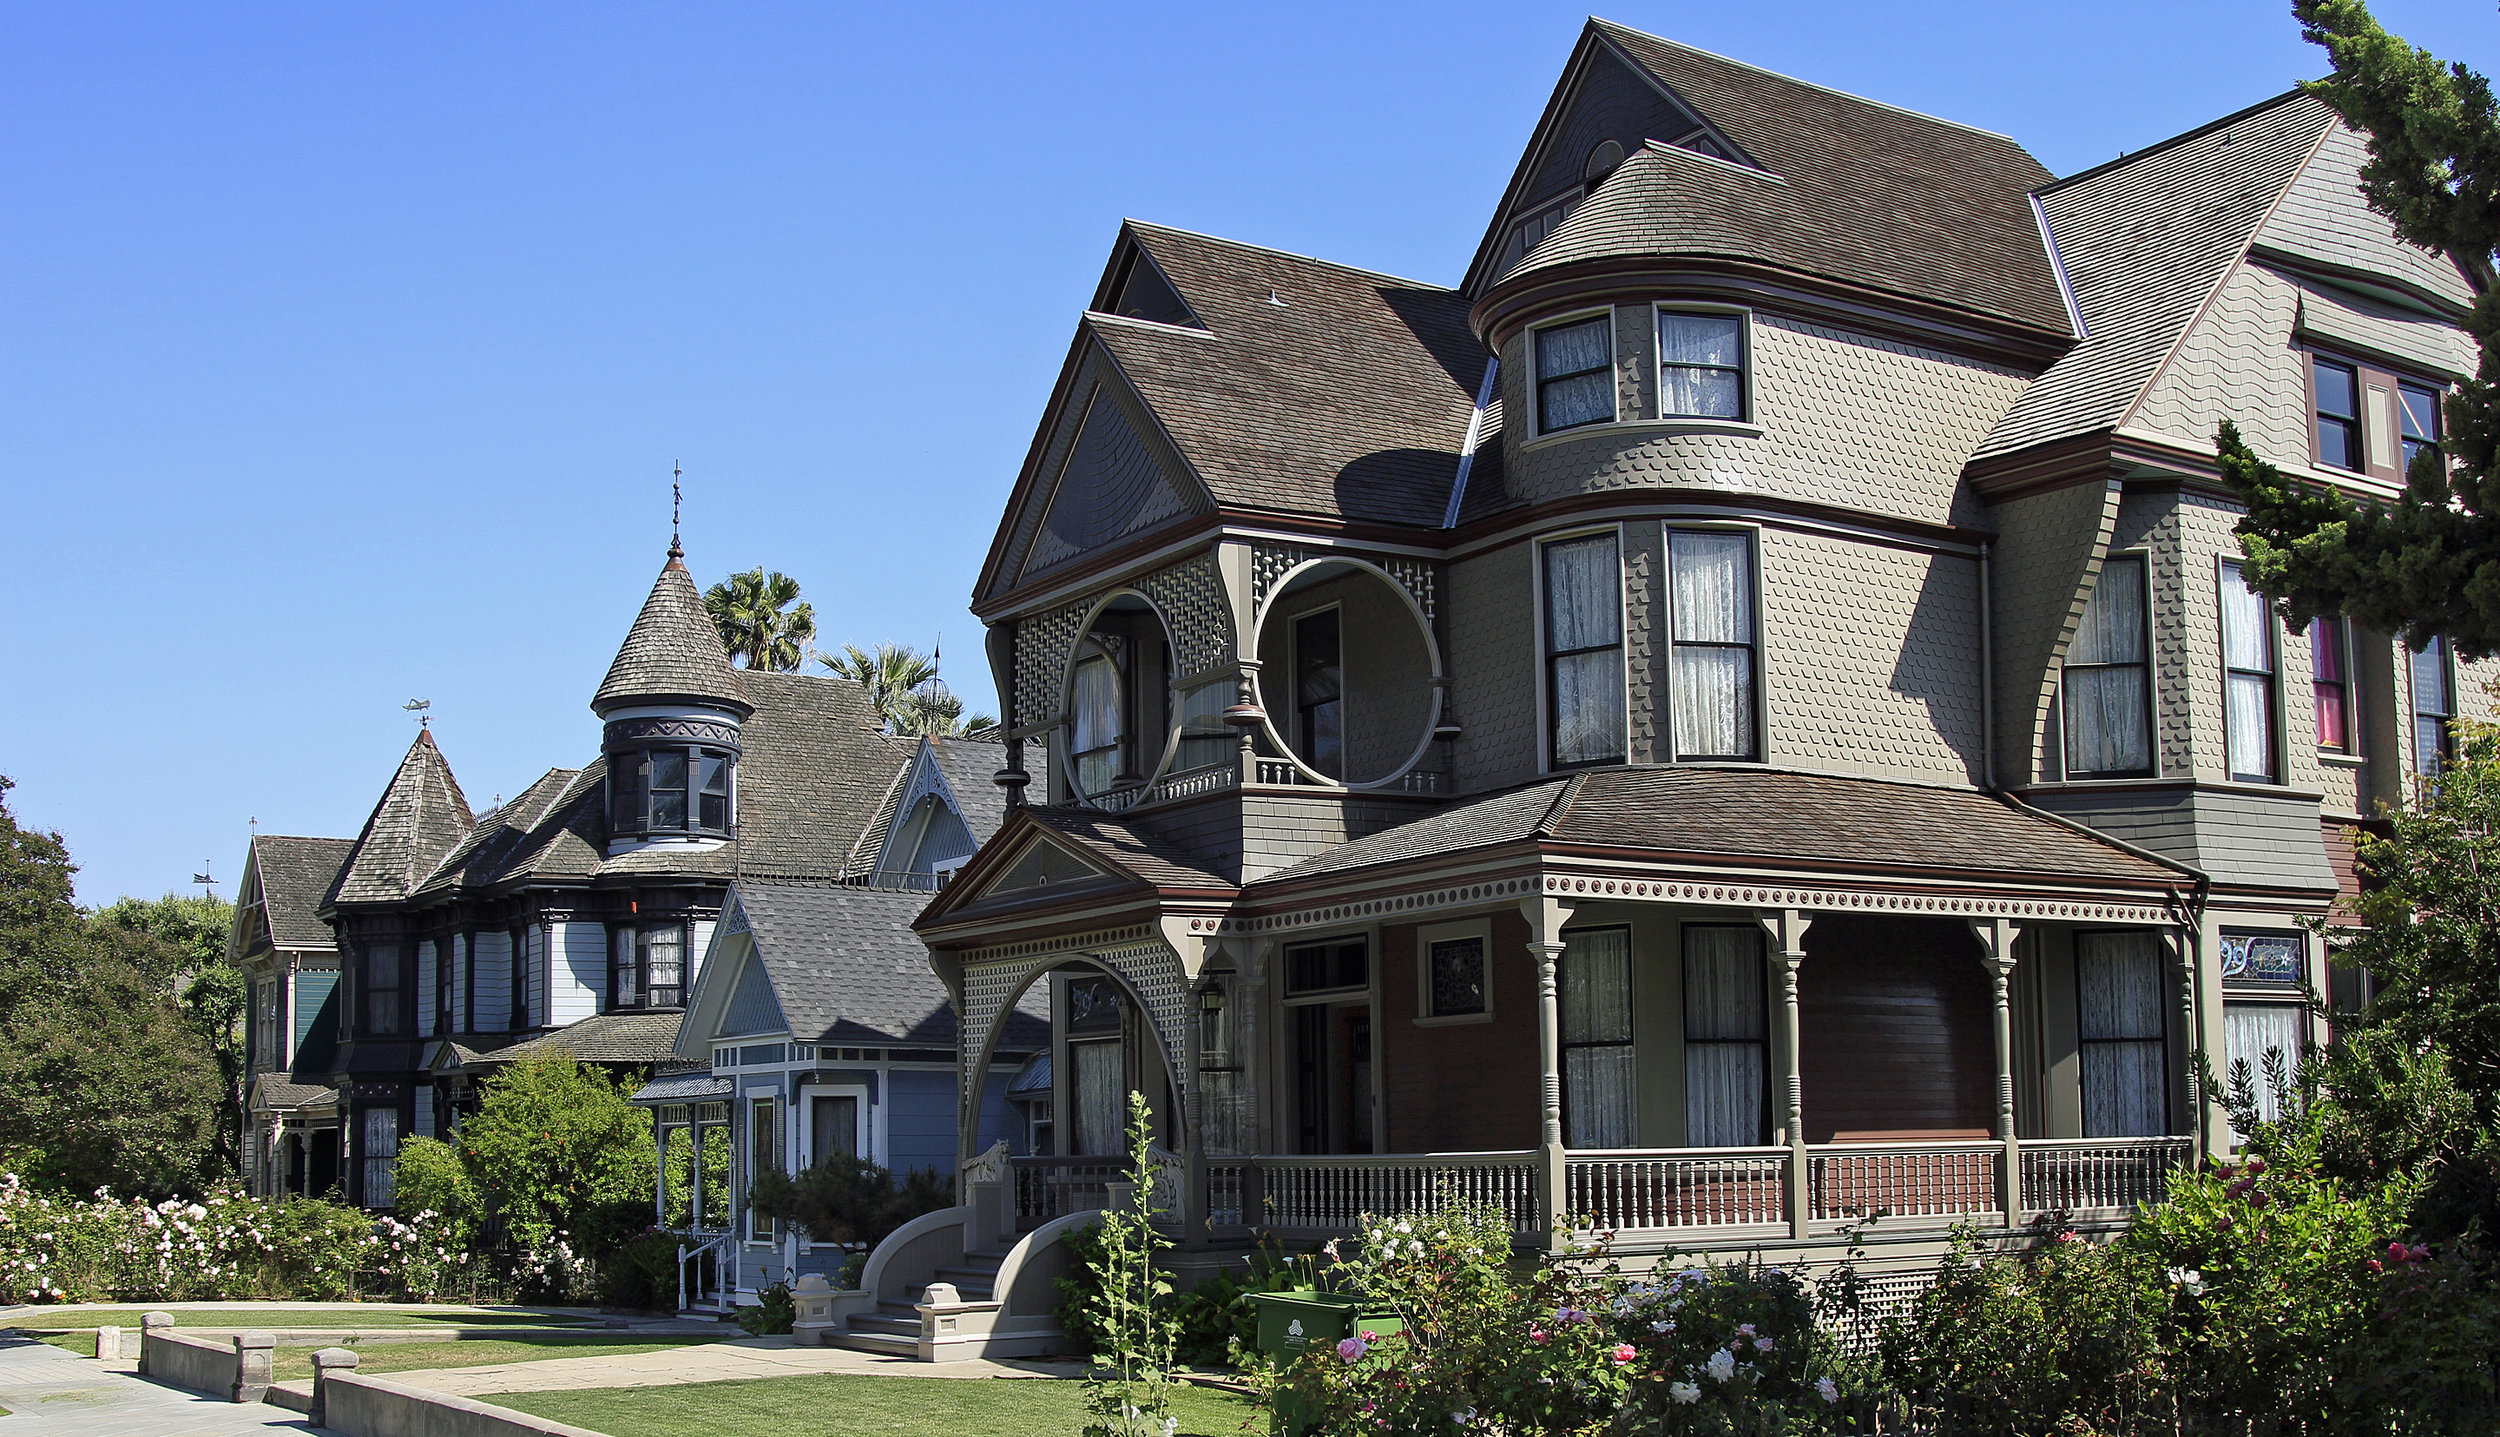 Sessions House - Joseph Cather Newsom. 1889. A view down Carroll Avenue and its famous showcase Victorian homes in the Angelino Heights section of Echo Park.   Learn more about Echo Park...